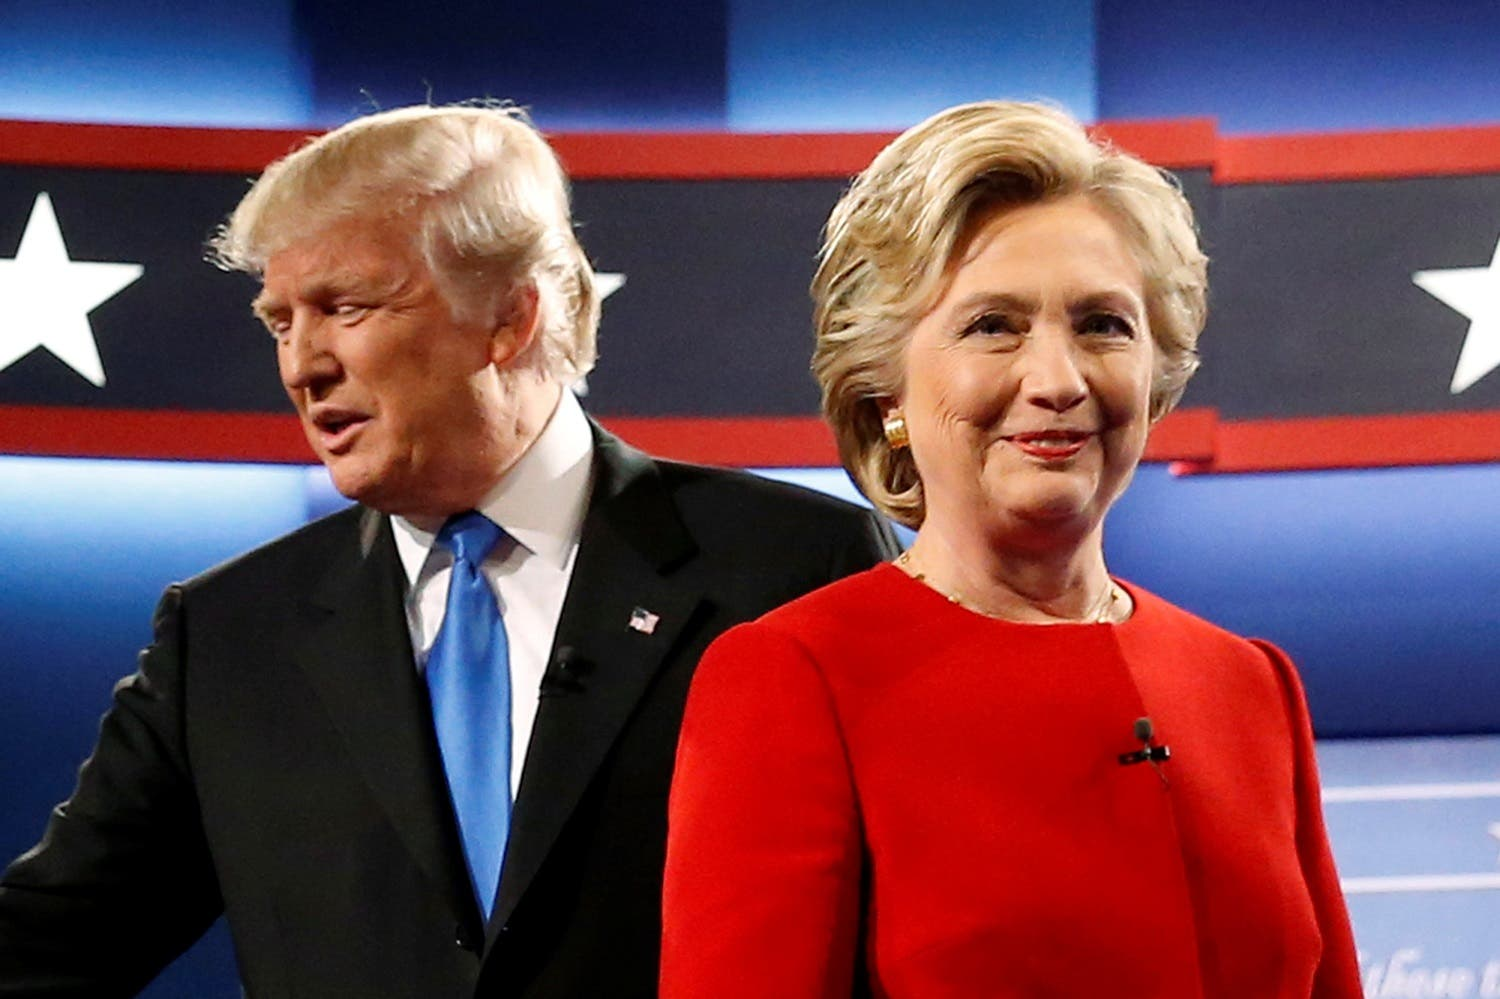 At the first debate, on Sept. 26, Trump was repeatedly put on the defensive by Clinton. (Reuters)